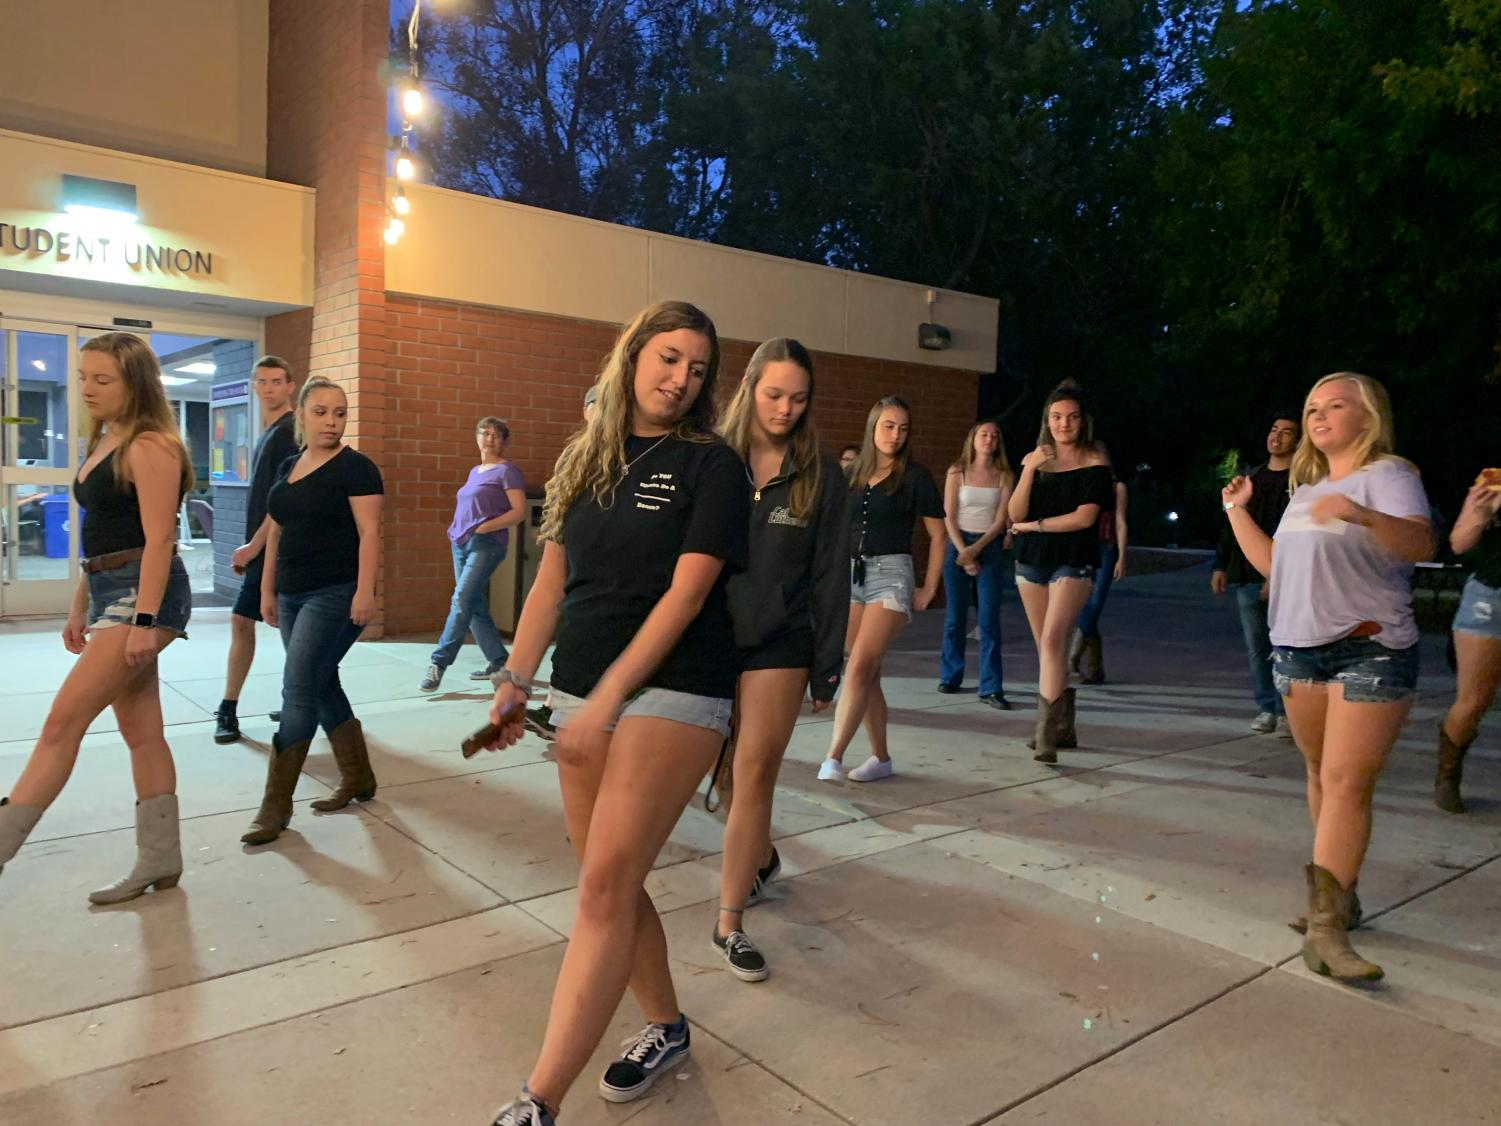 The Canyon Club offers lessons and discounts to students who attend Line Dancing Club.